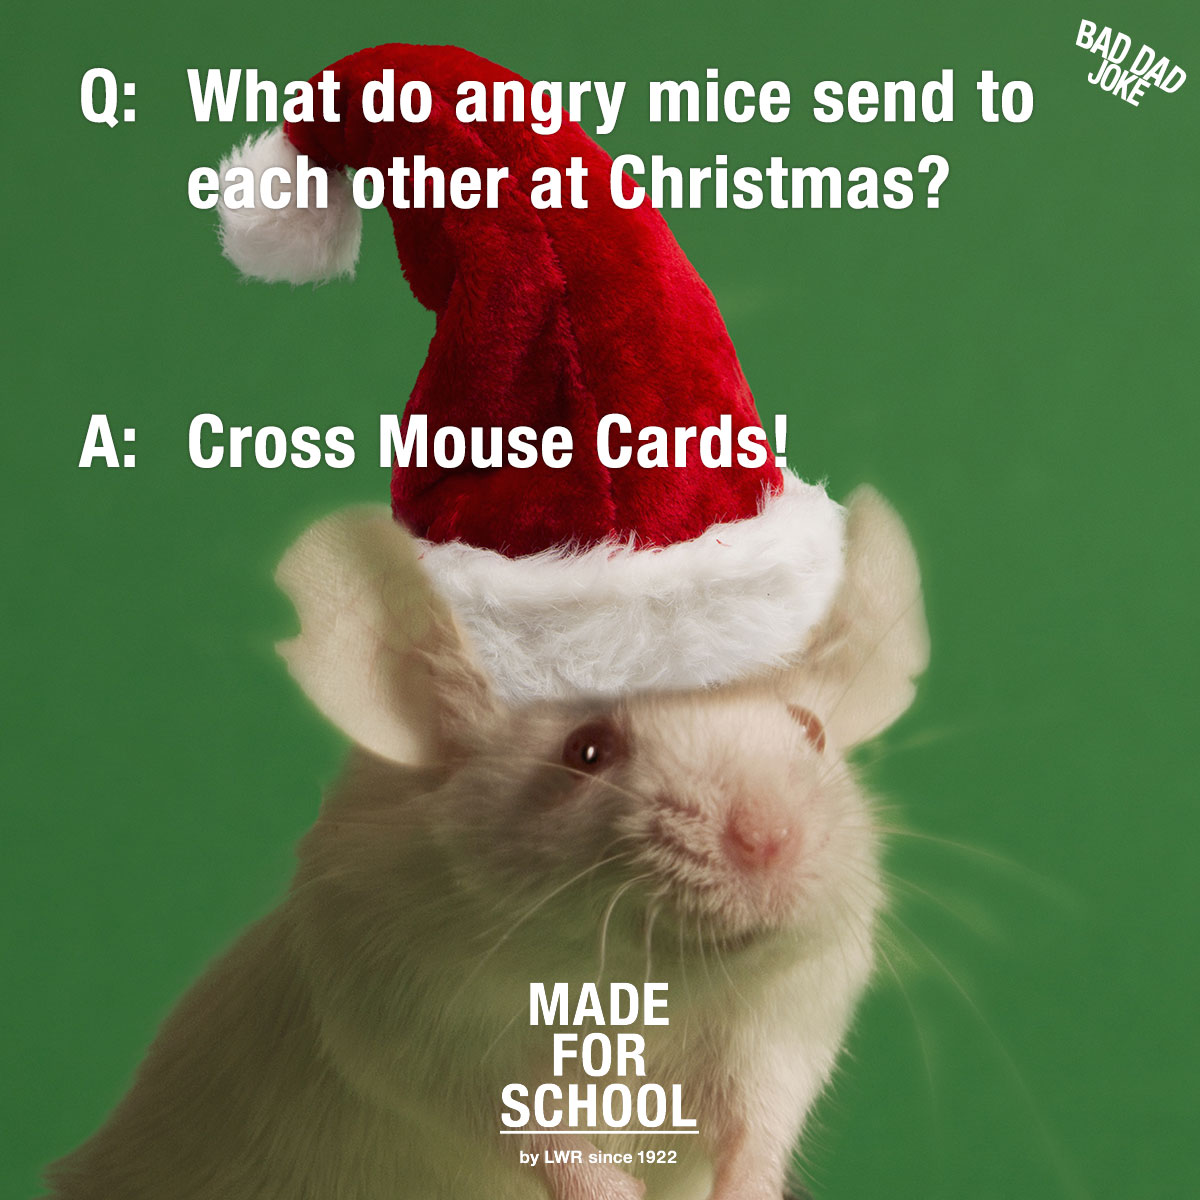 Bad Dad Joke: Angry Mice | Made For School